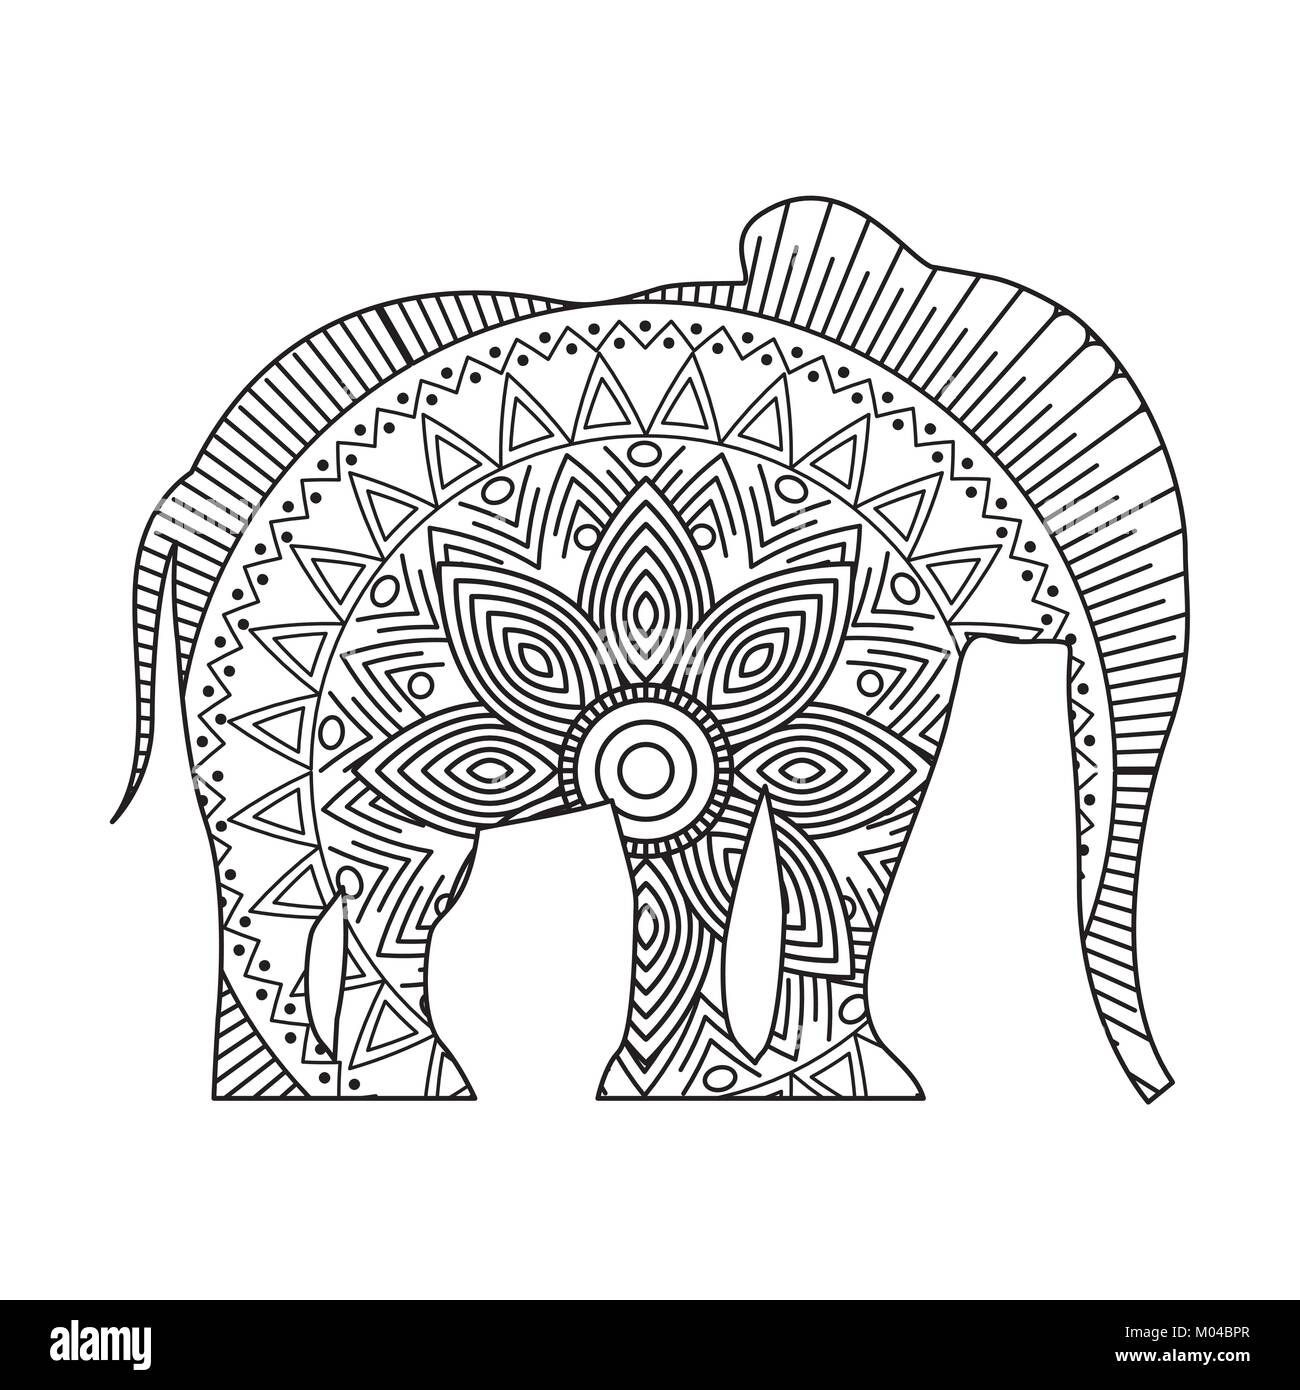 Drawing Zentangle For Elephant Adult Coloring Page Stock Vector Art